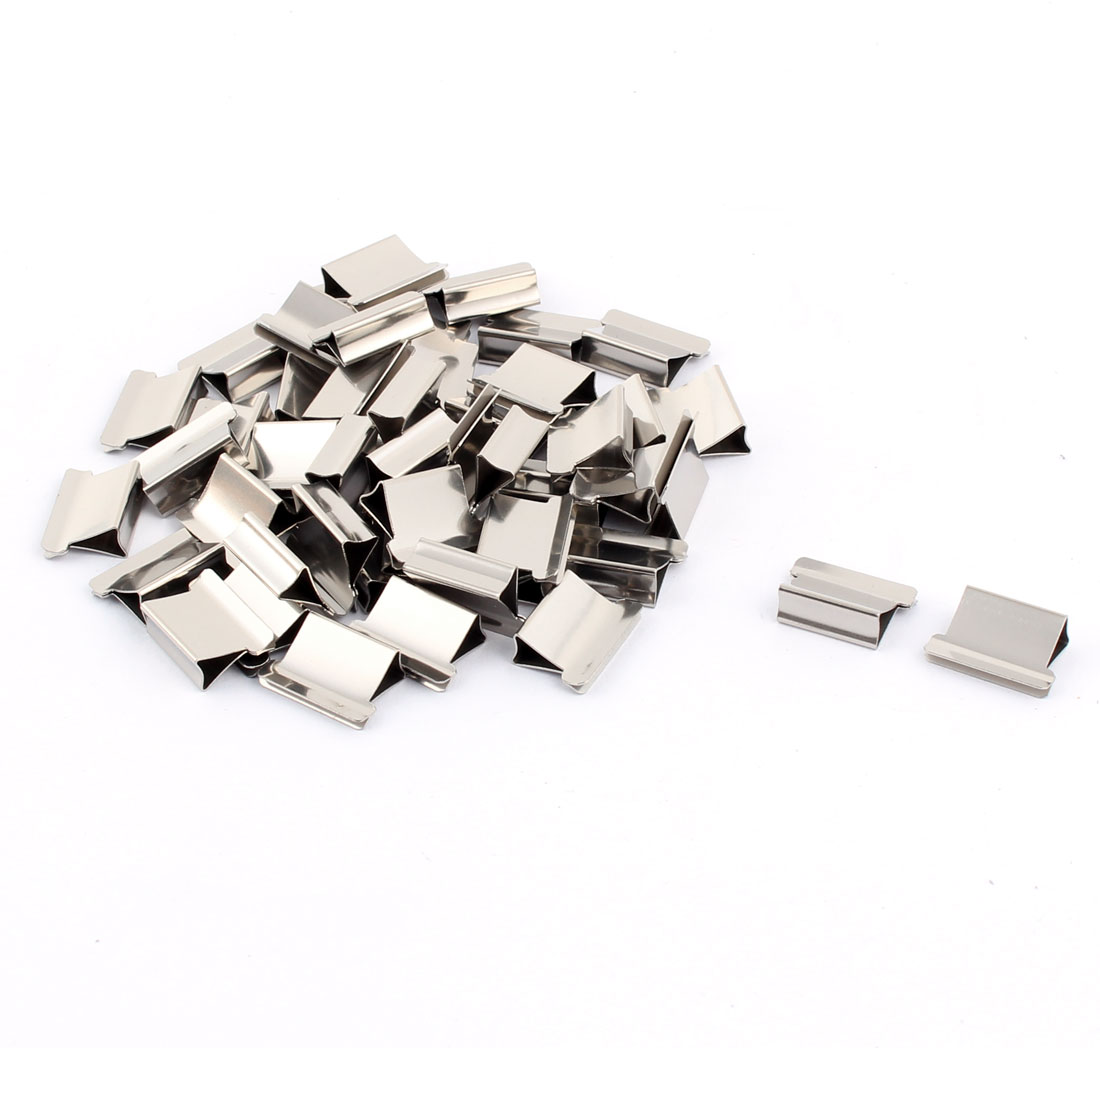 Office Metal Fastener Clamp Staple Dispenser Clips Silver Tone 50 Pcs